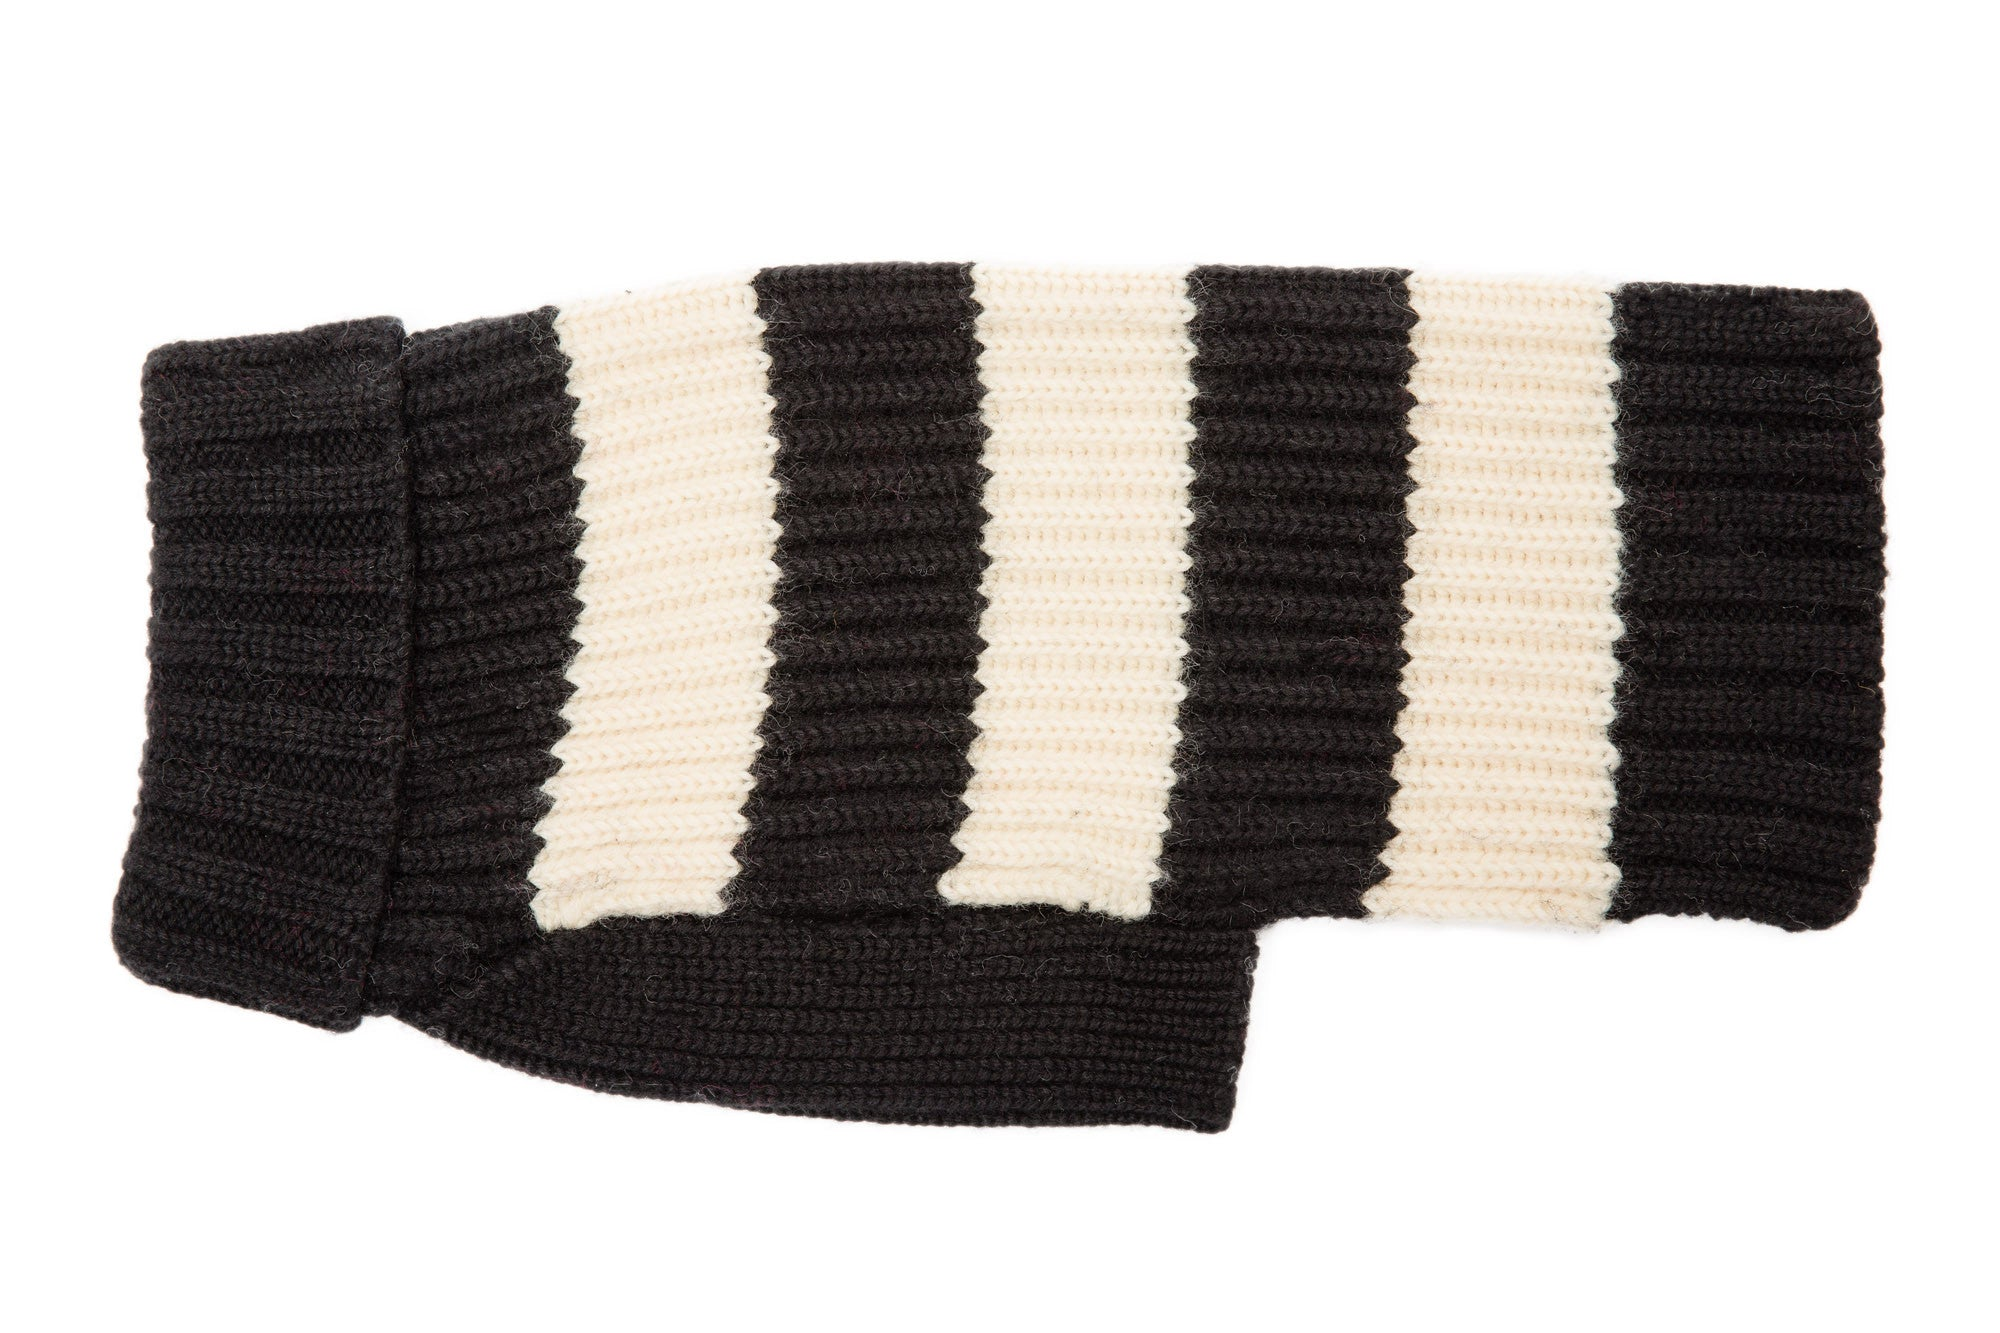 Dog Sweater - Wool Varsity Stripe, 3 Colors